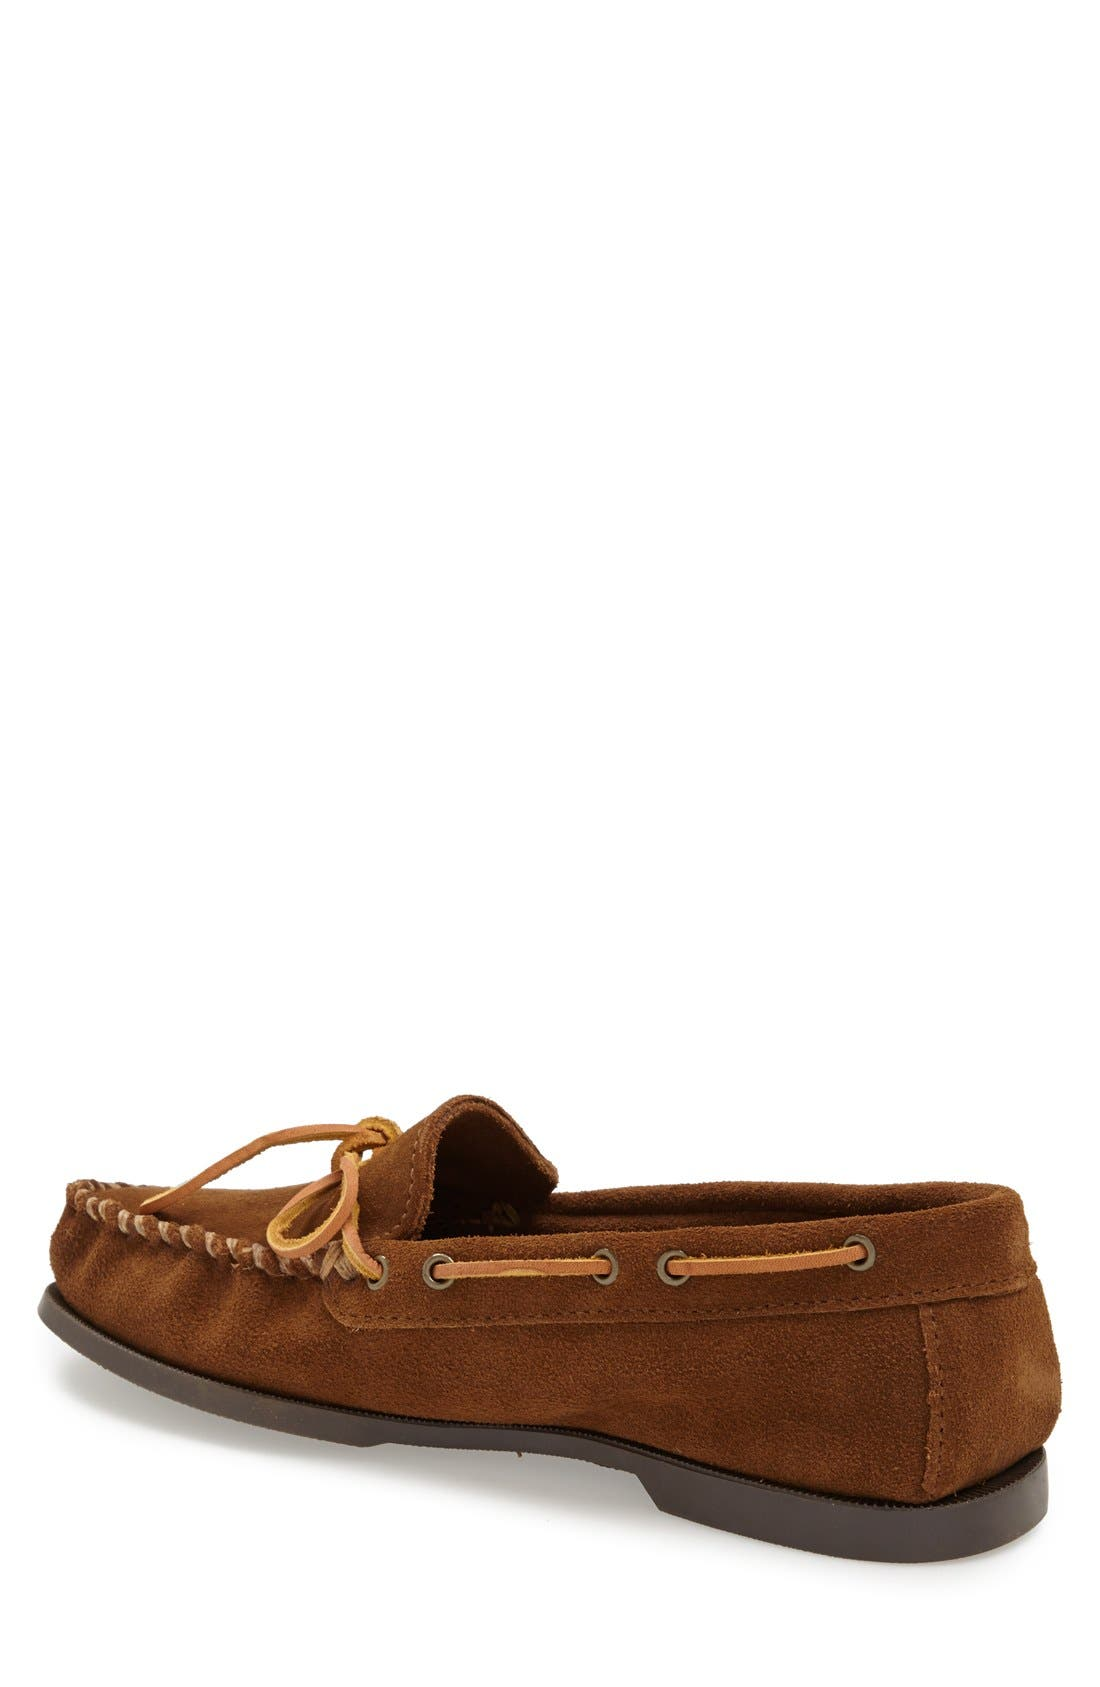 Leather Camp Moccasin,                             Alternate thumbnail 3, color,                             DUSTY BROWN